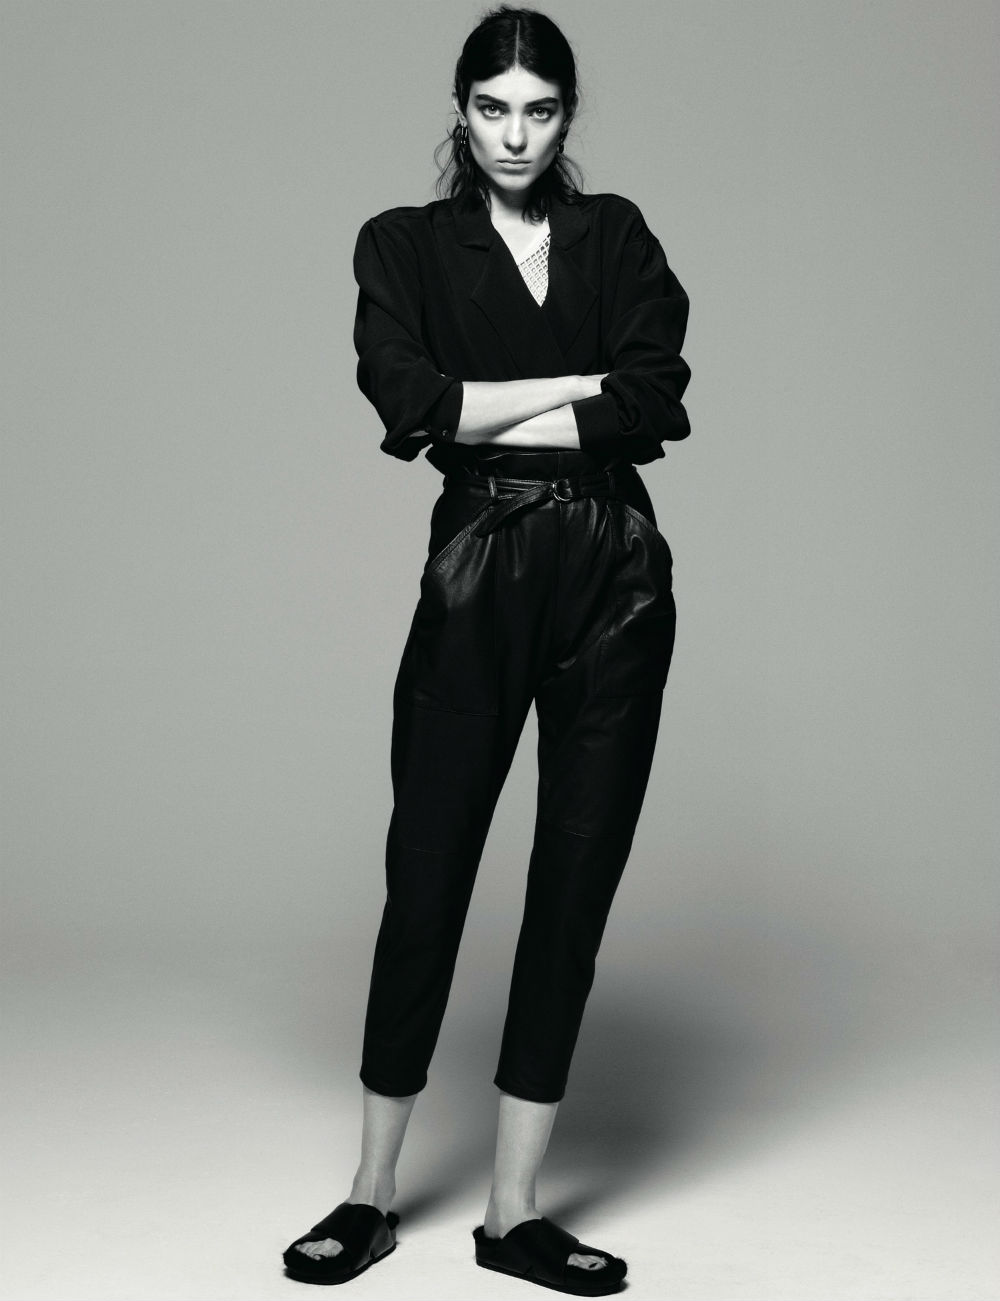 Kati Nescher in AnOther Magazne Spring 2013 by Daniel Jackson leather trousers